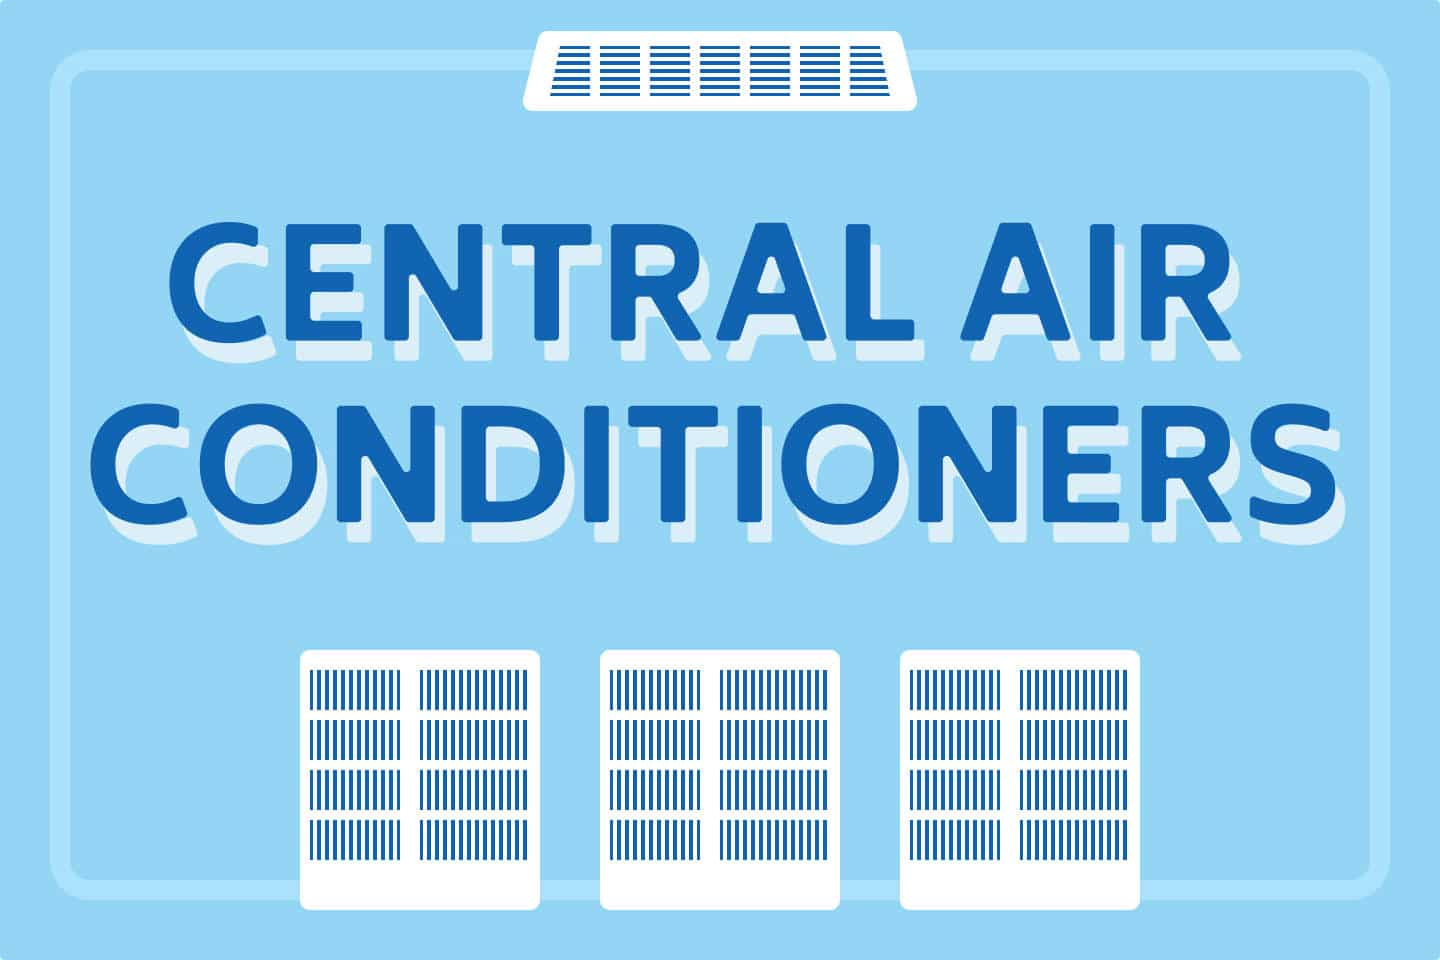 ❄️ Best Central Air Conditioner Brands